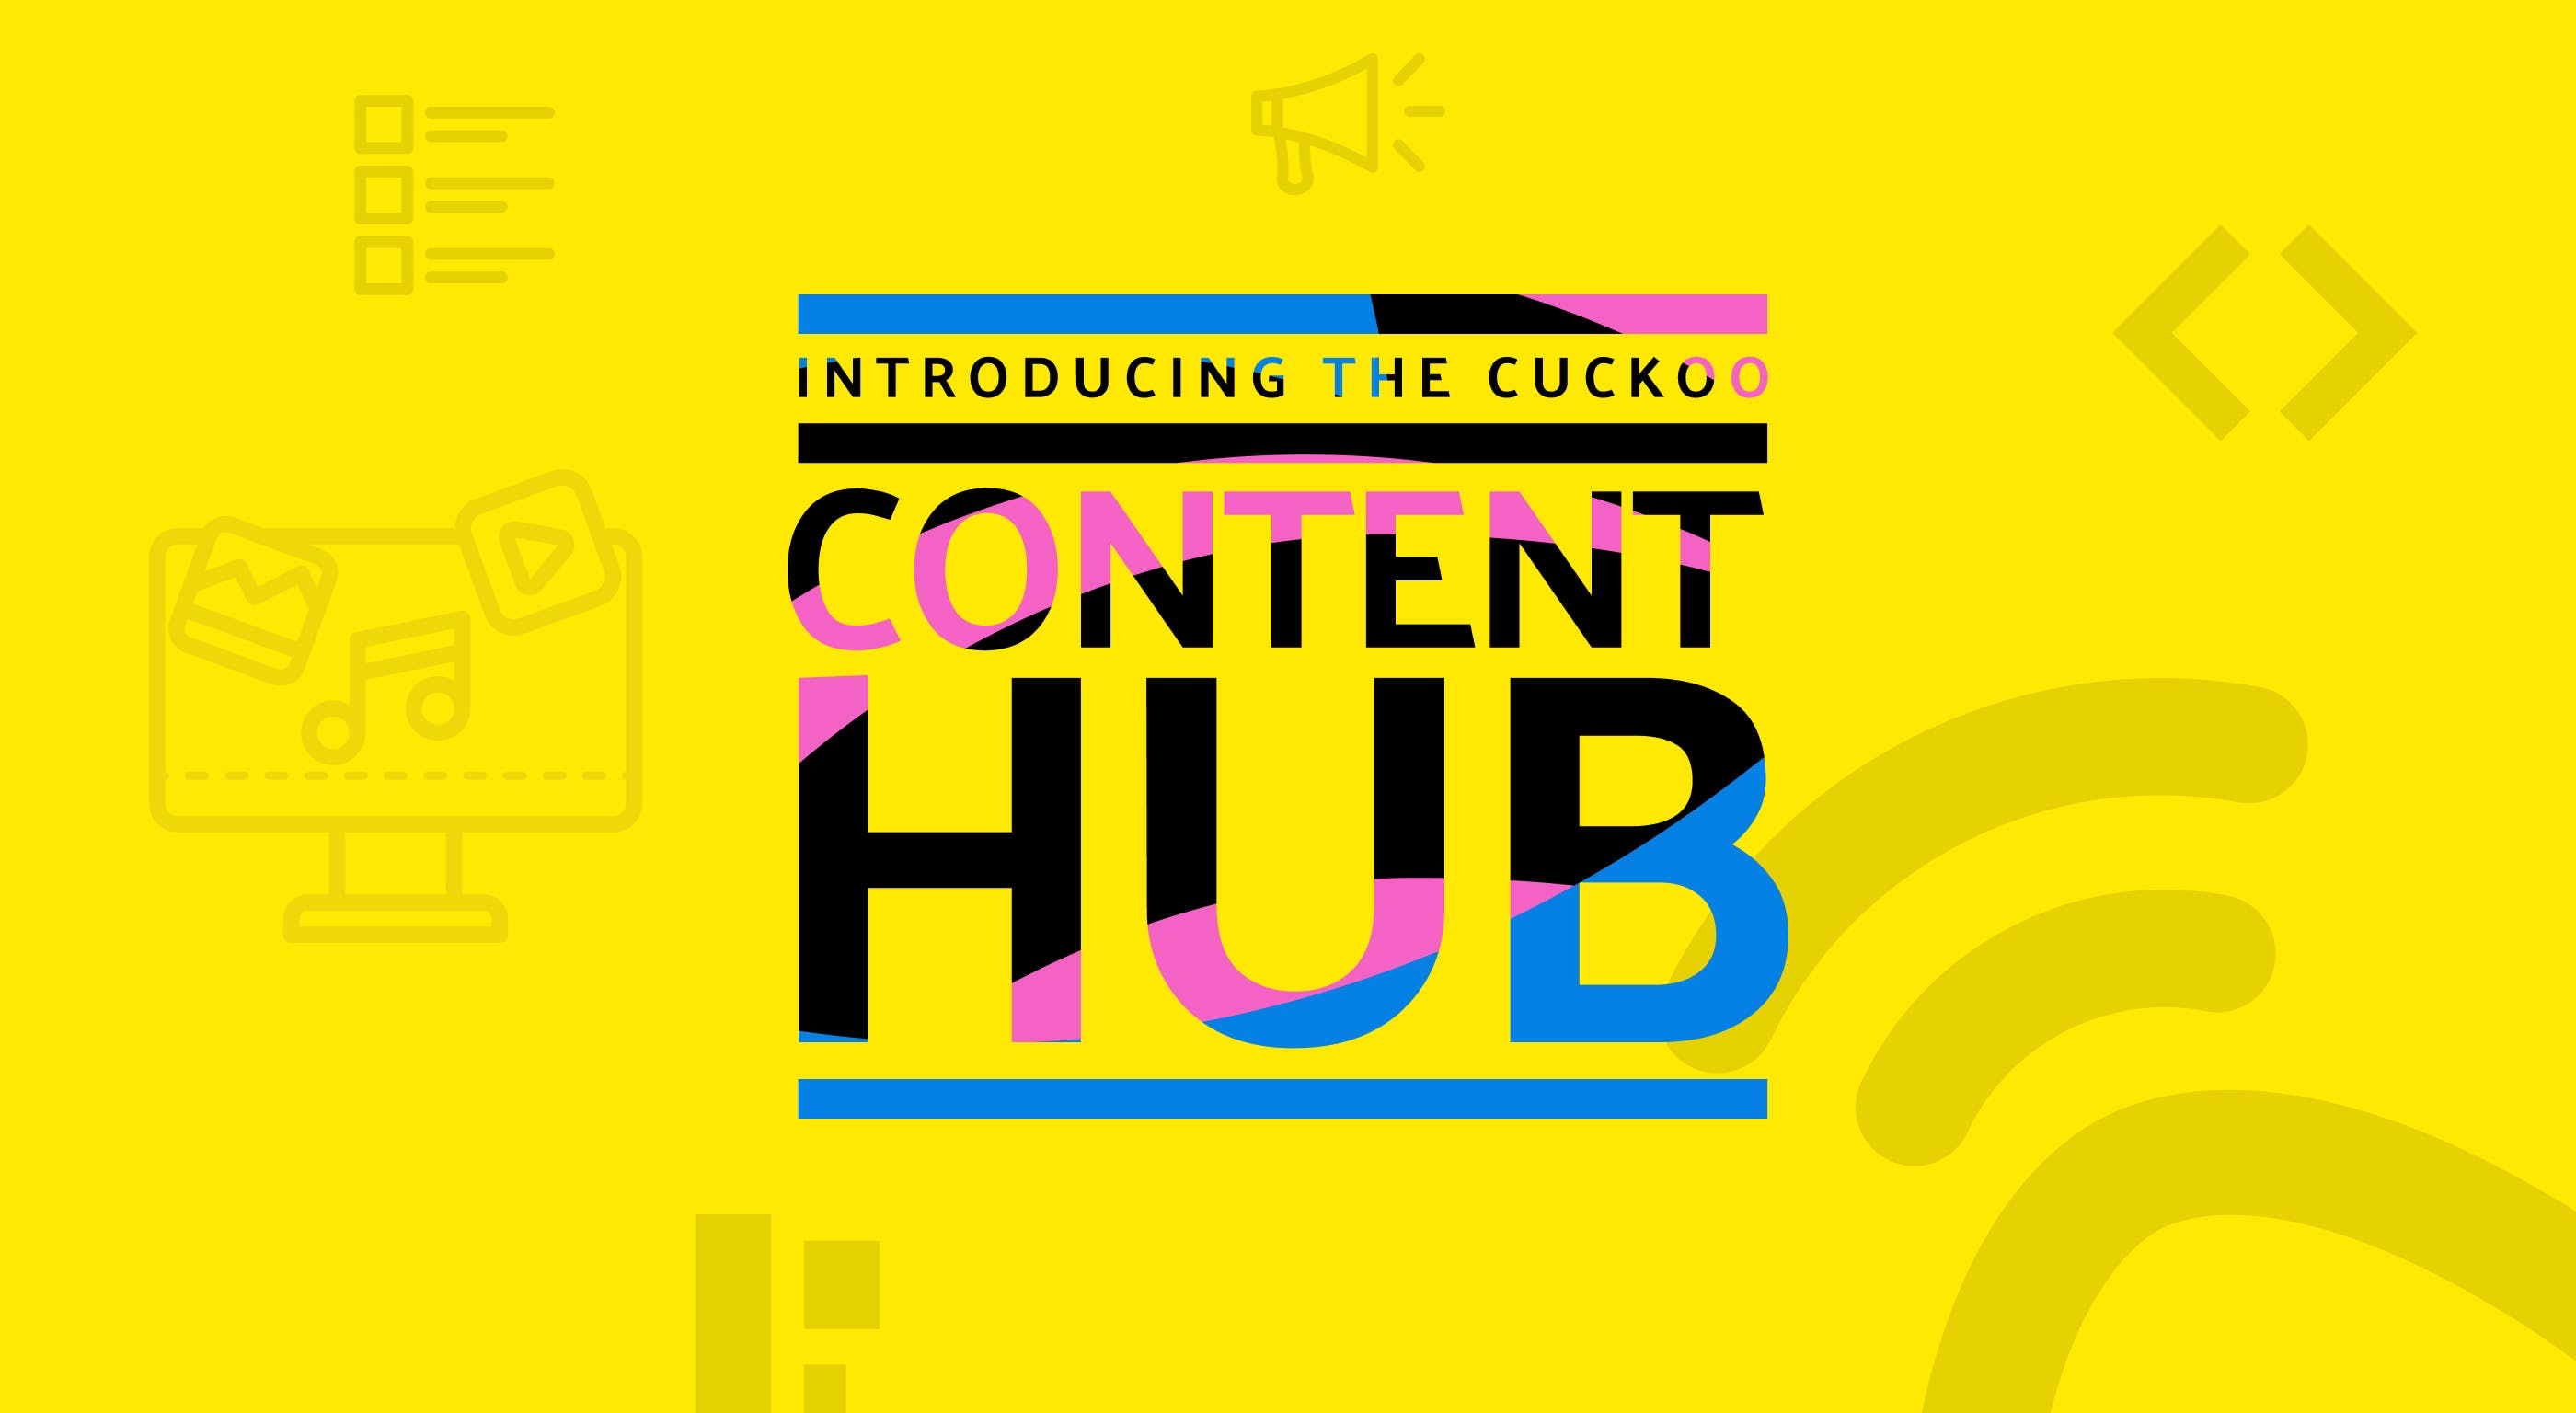 Introducing the Cuckoo Content Hub